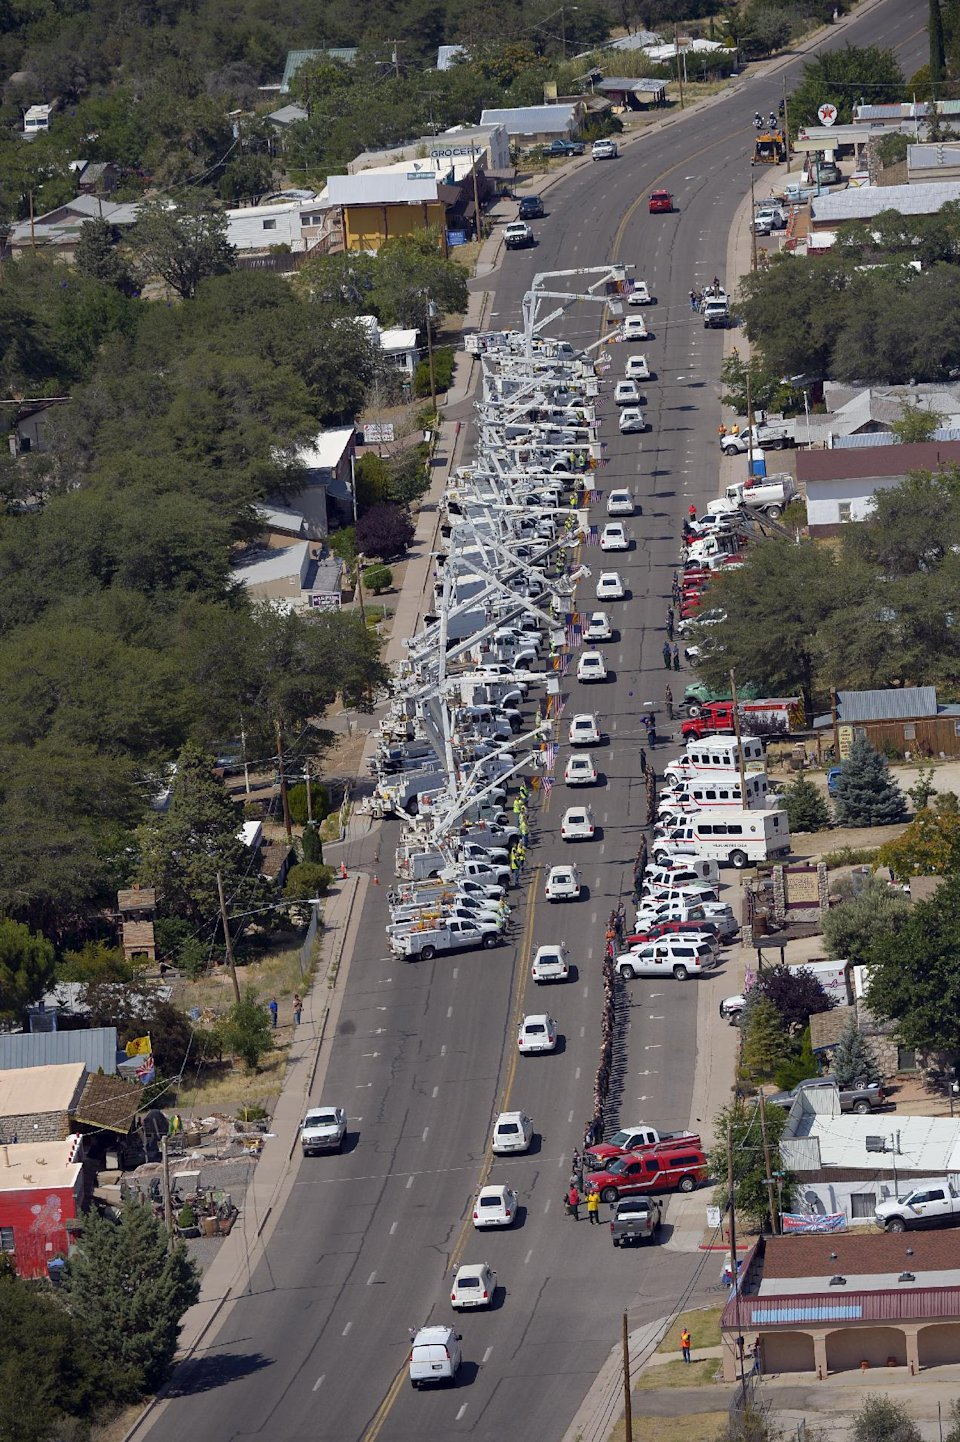 A procession of 19 hearses drives by, Sunday, July 7, 2013, in Yarnell, Ariz, The elite crew of firefighters were overtaken by the out-of-control blaze as they tried to protect themselves from the flames under fire-resistant shields last Sunday. (AP Photo/Mark J. Terrill)